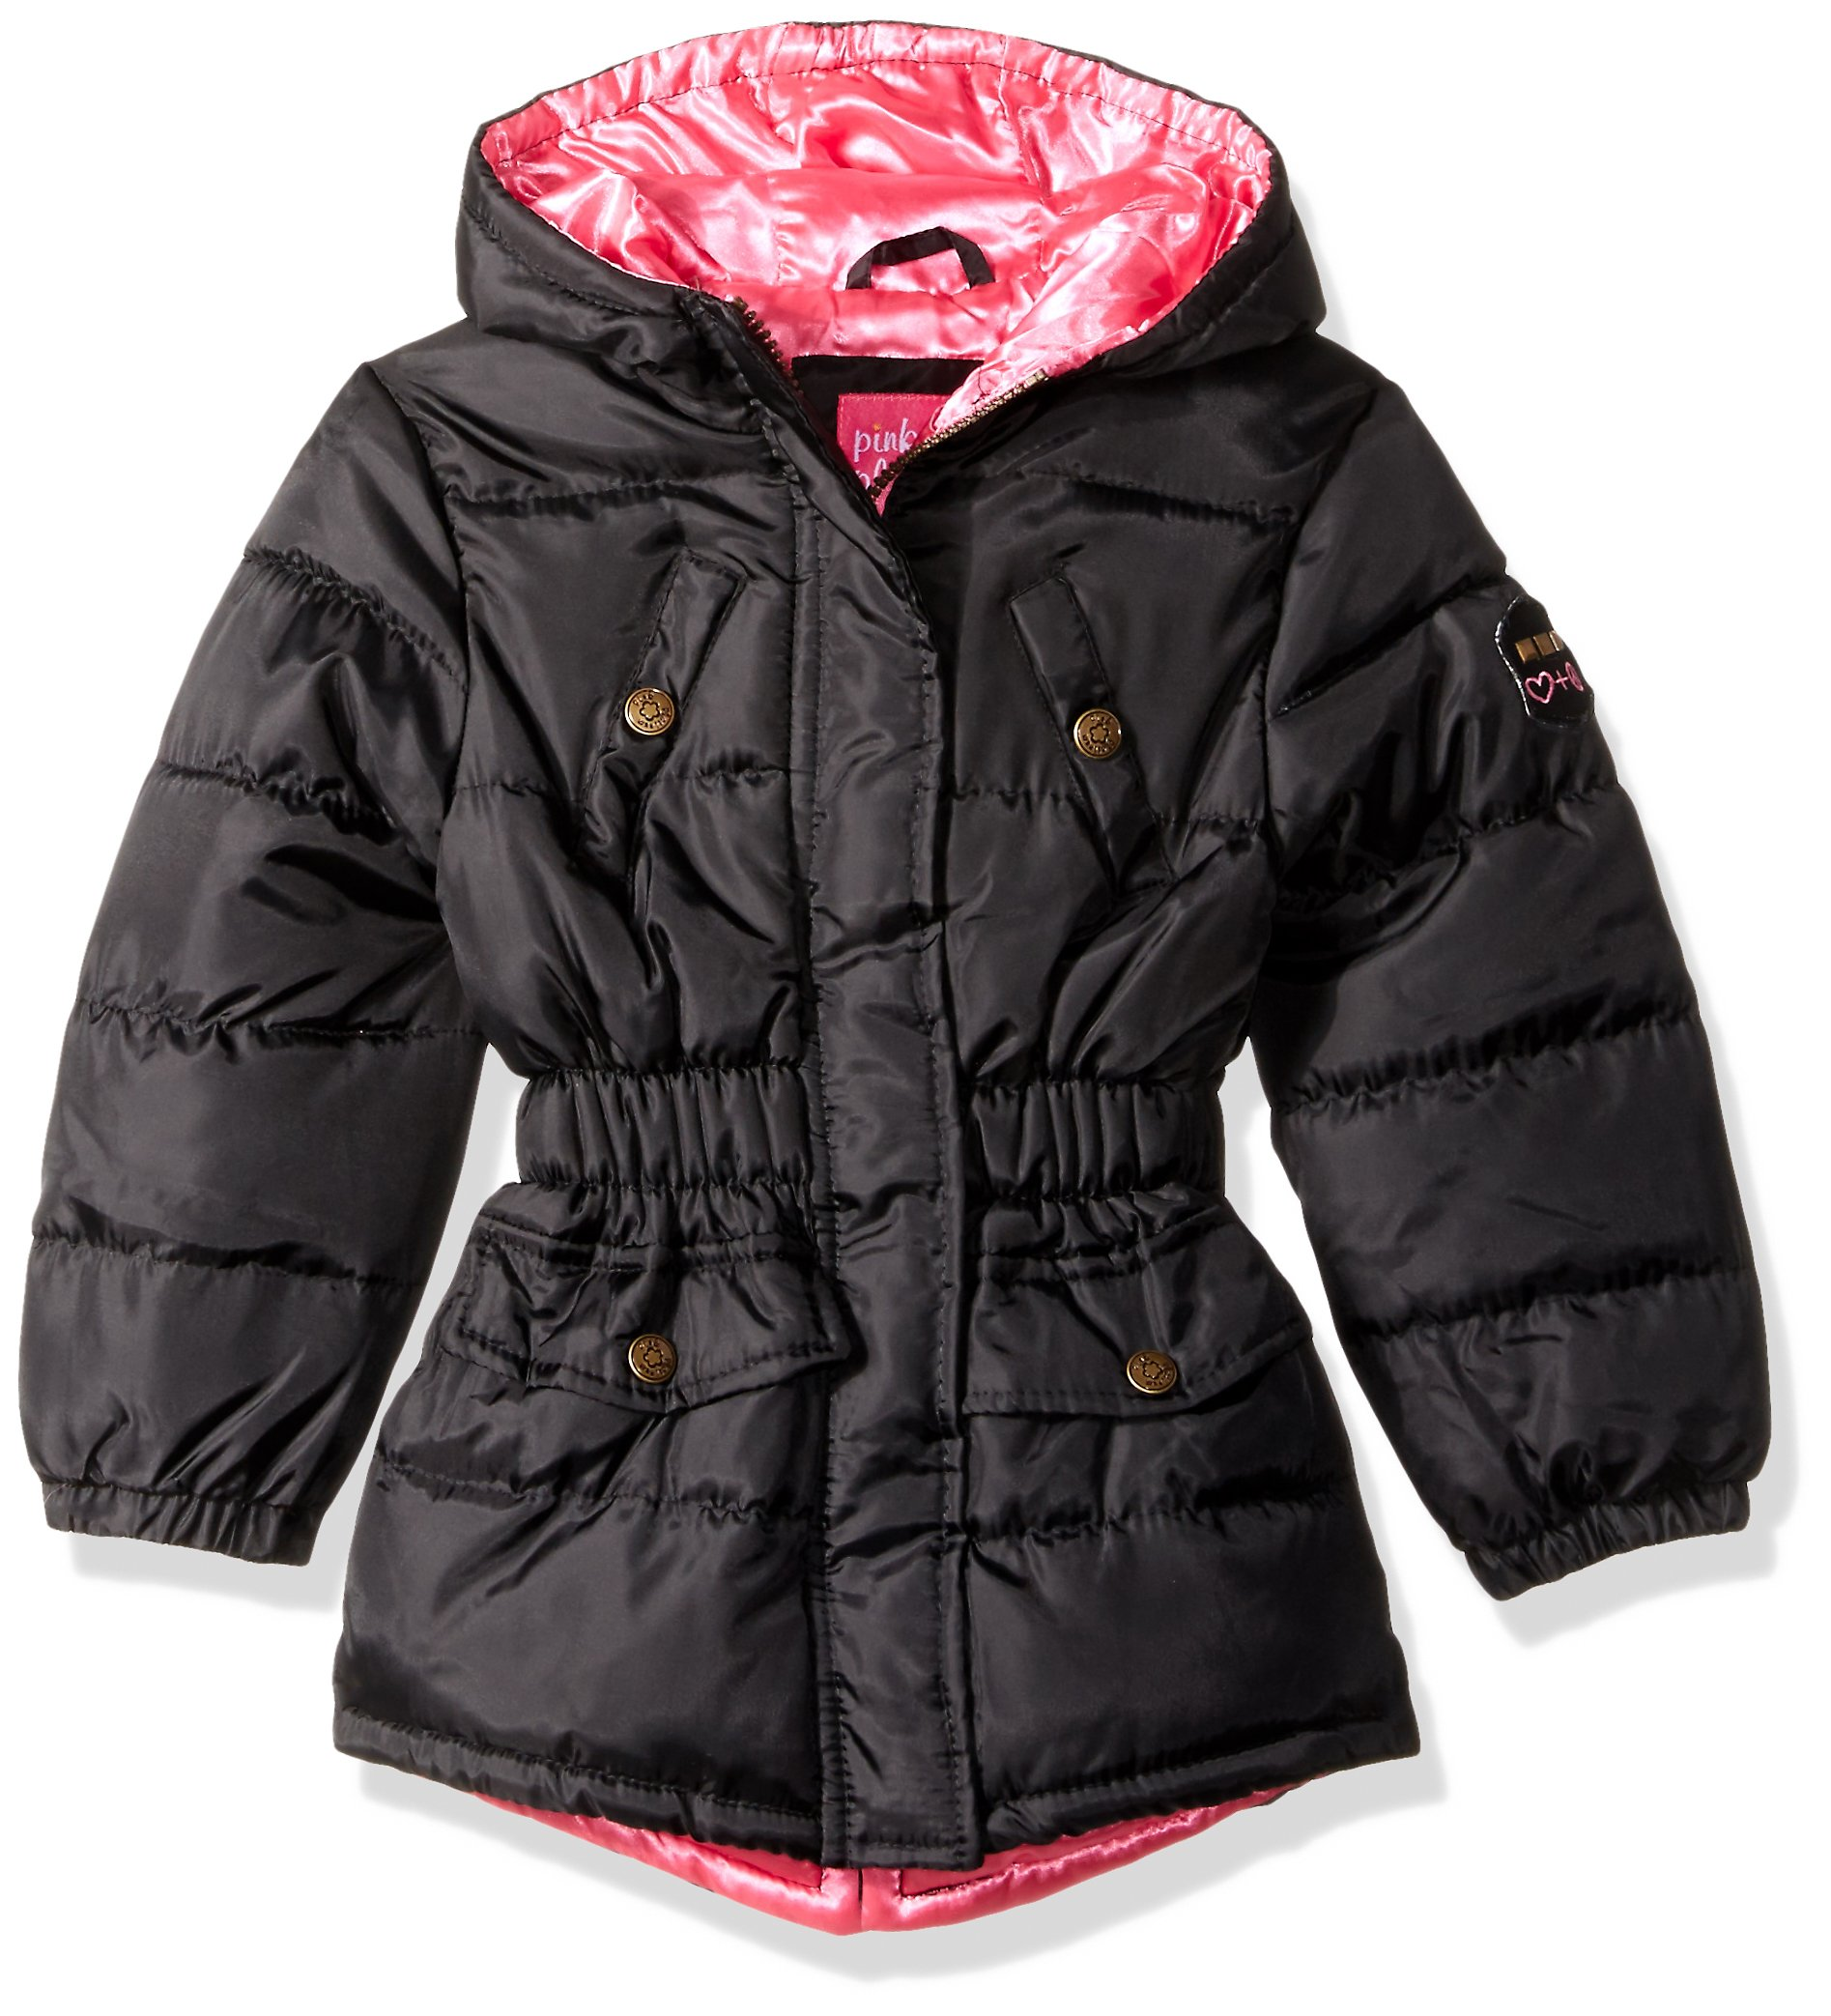 Pink Platinum Toddler Girls' Pop Anorak Jacket, Black, 2T